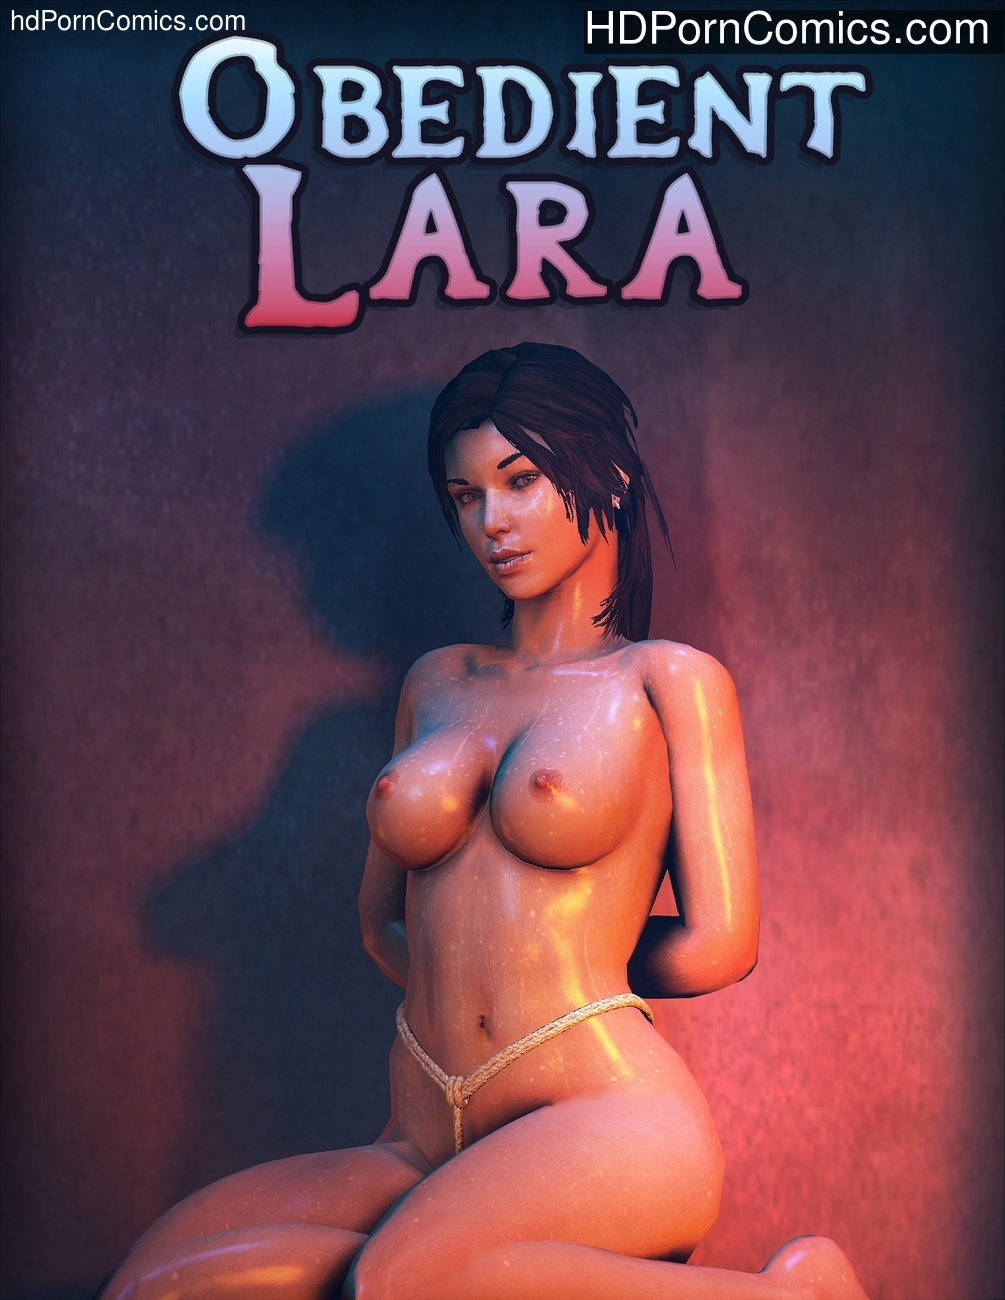 Obedient Lara Sex Comic